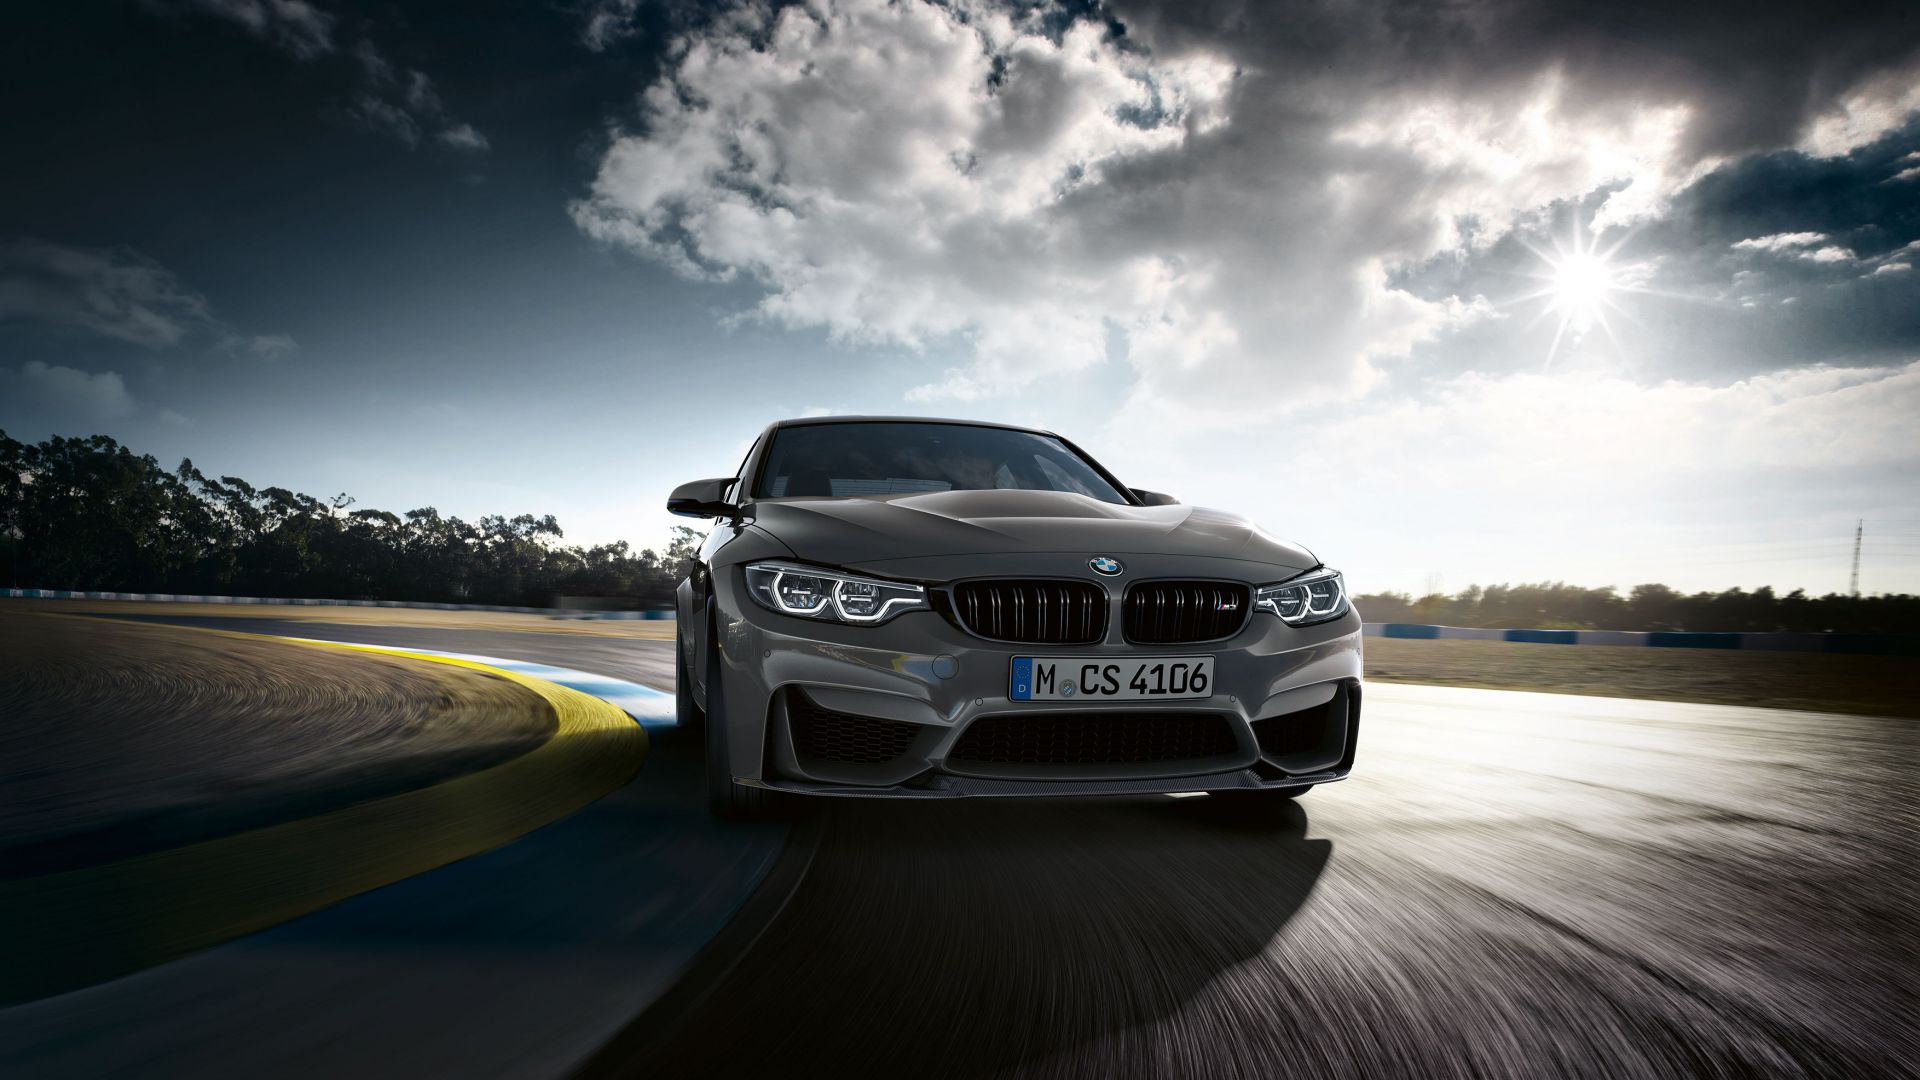 Bmw Wallpaper For Iphone Kolpaper Awesome Free Hd Wallpapers